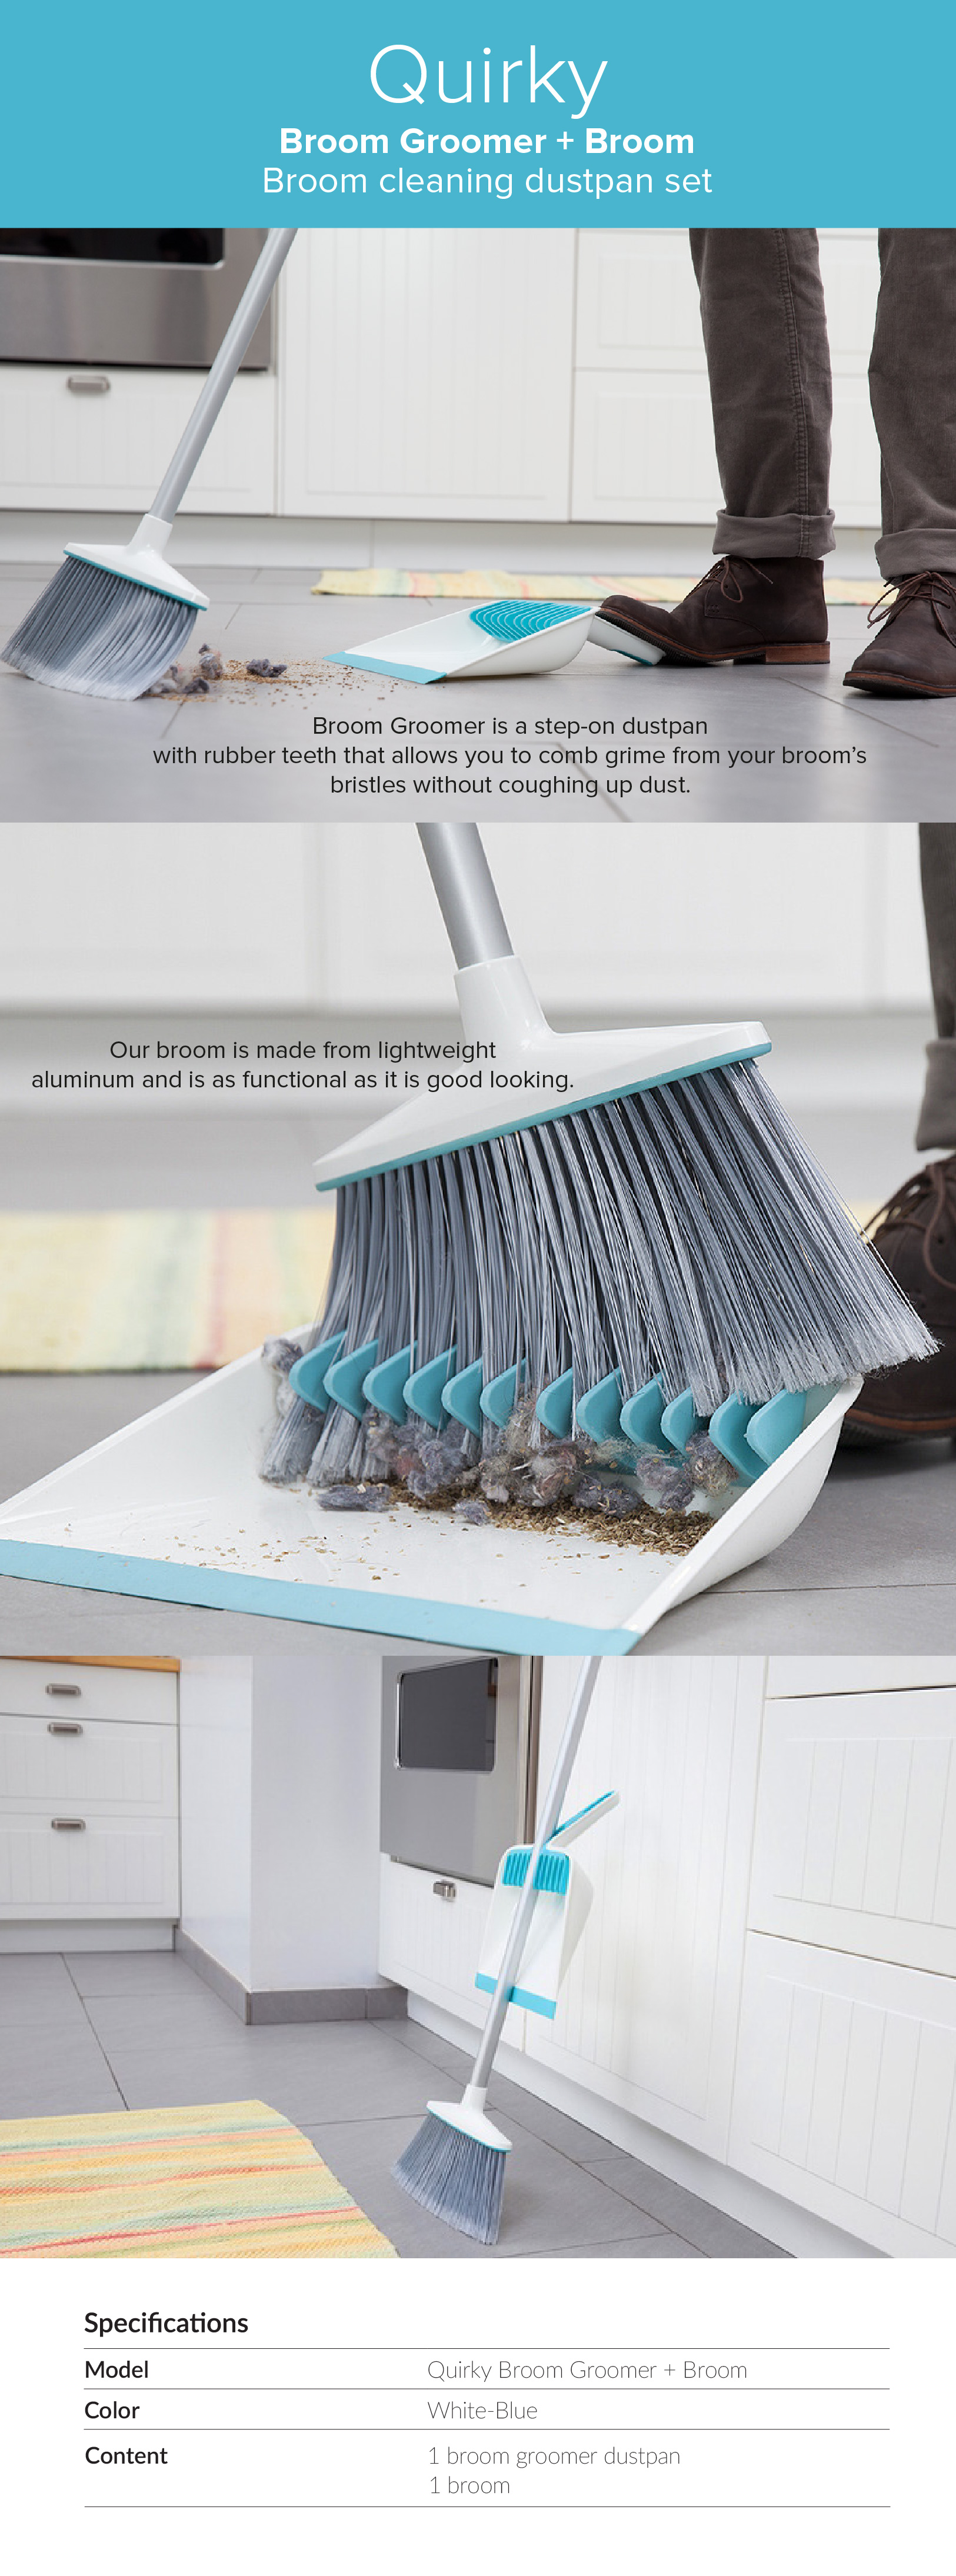 Quirky Broom Groomer With Broom(Broom-Cleaning Dustpan Set) PD